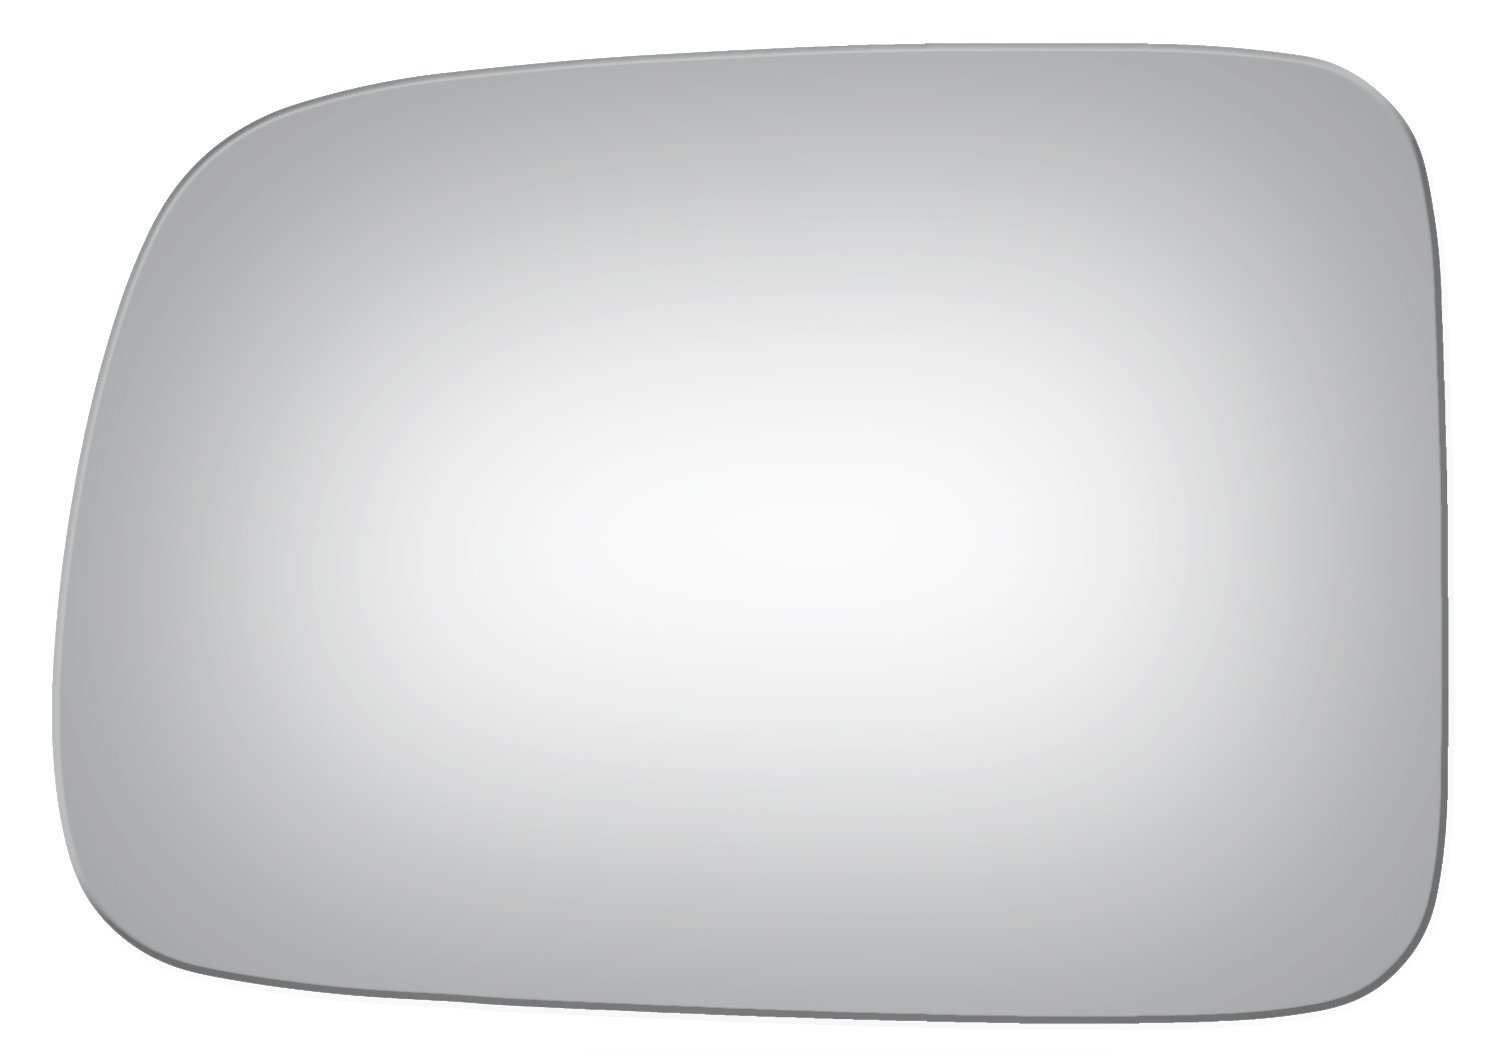 Burco 2844 - Honda CRV Driver Side Replacement Mirror Glass